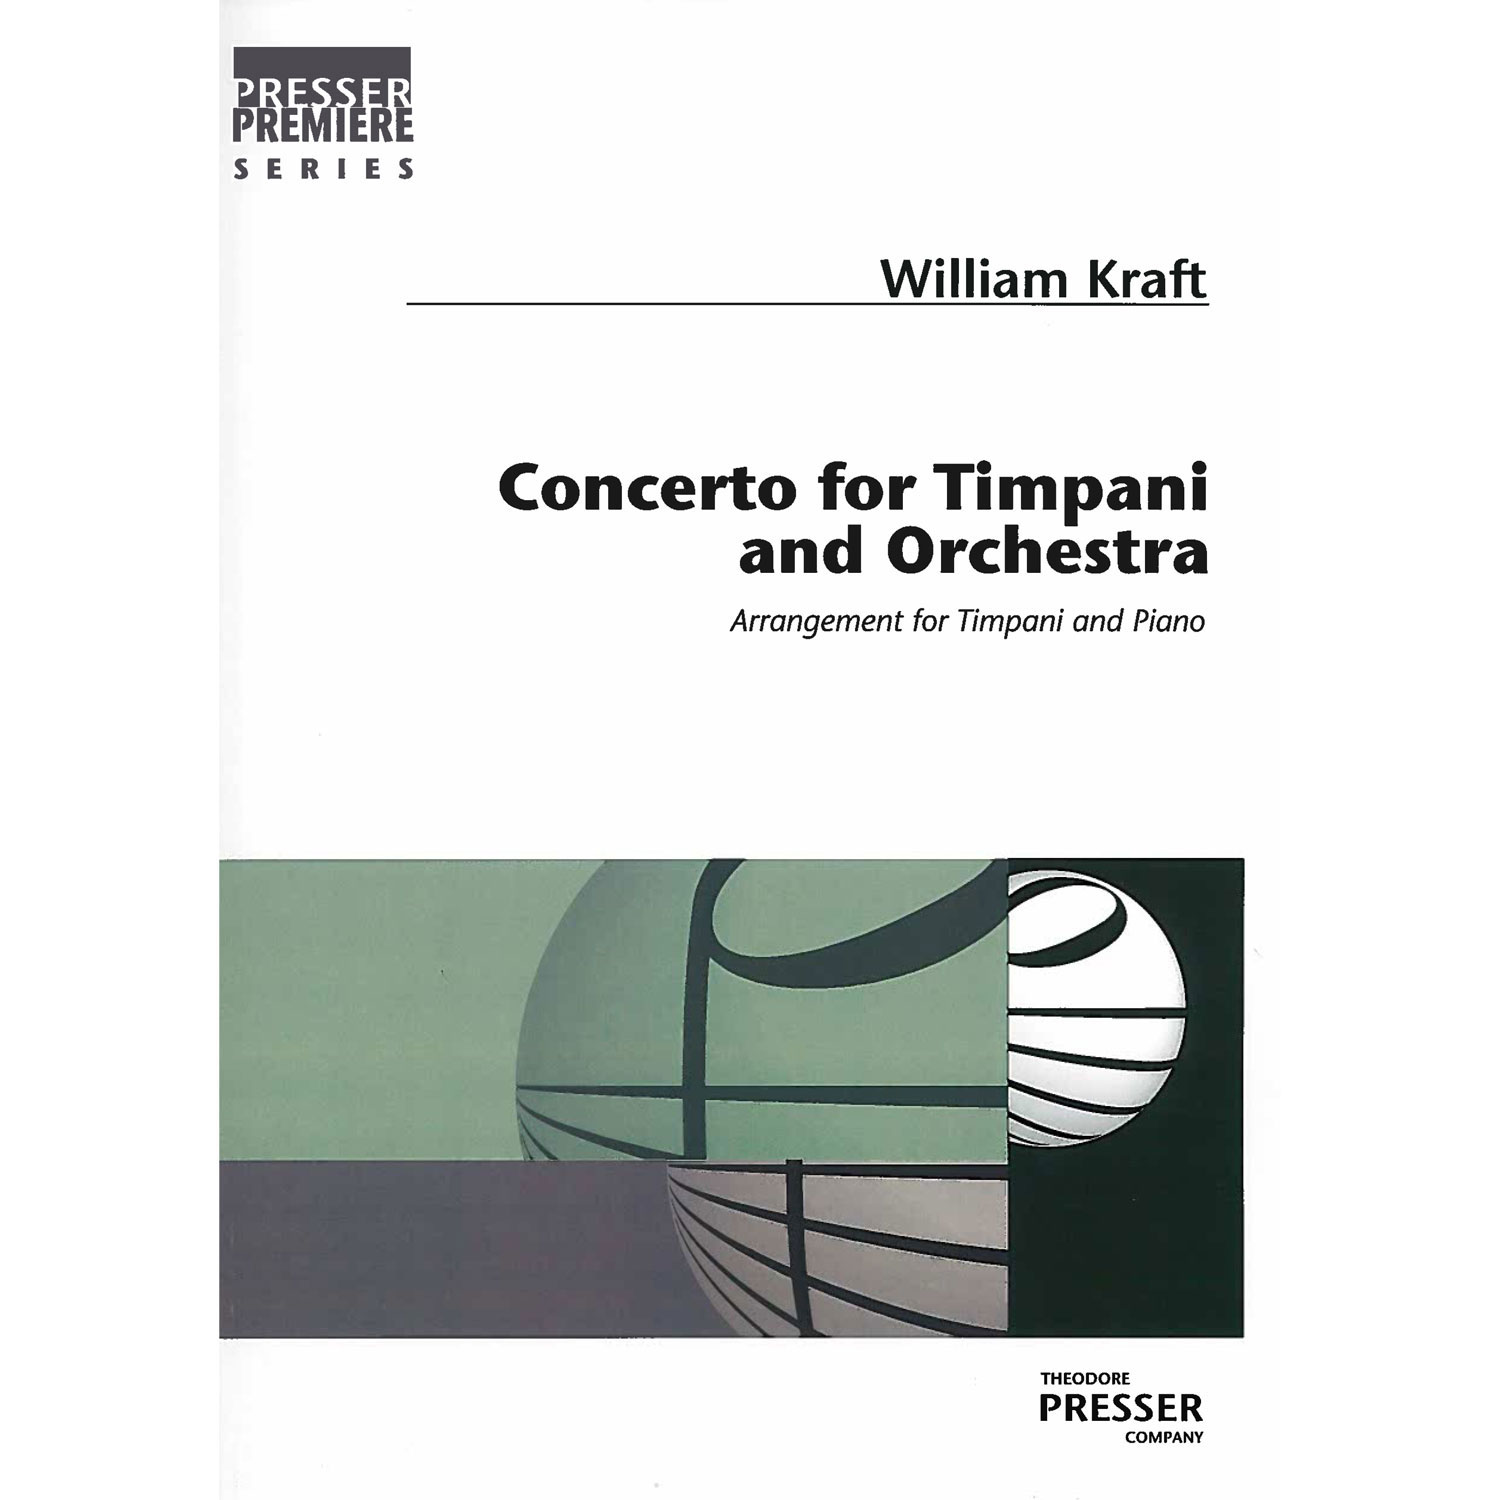 Original Version of Concerto for Timpani & Orchestra by William Kraft (Piano Reduction)